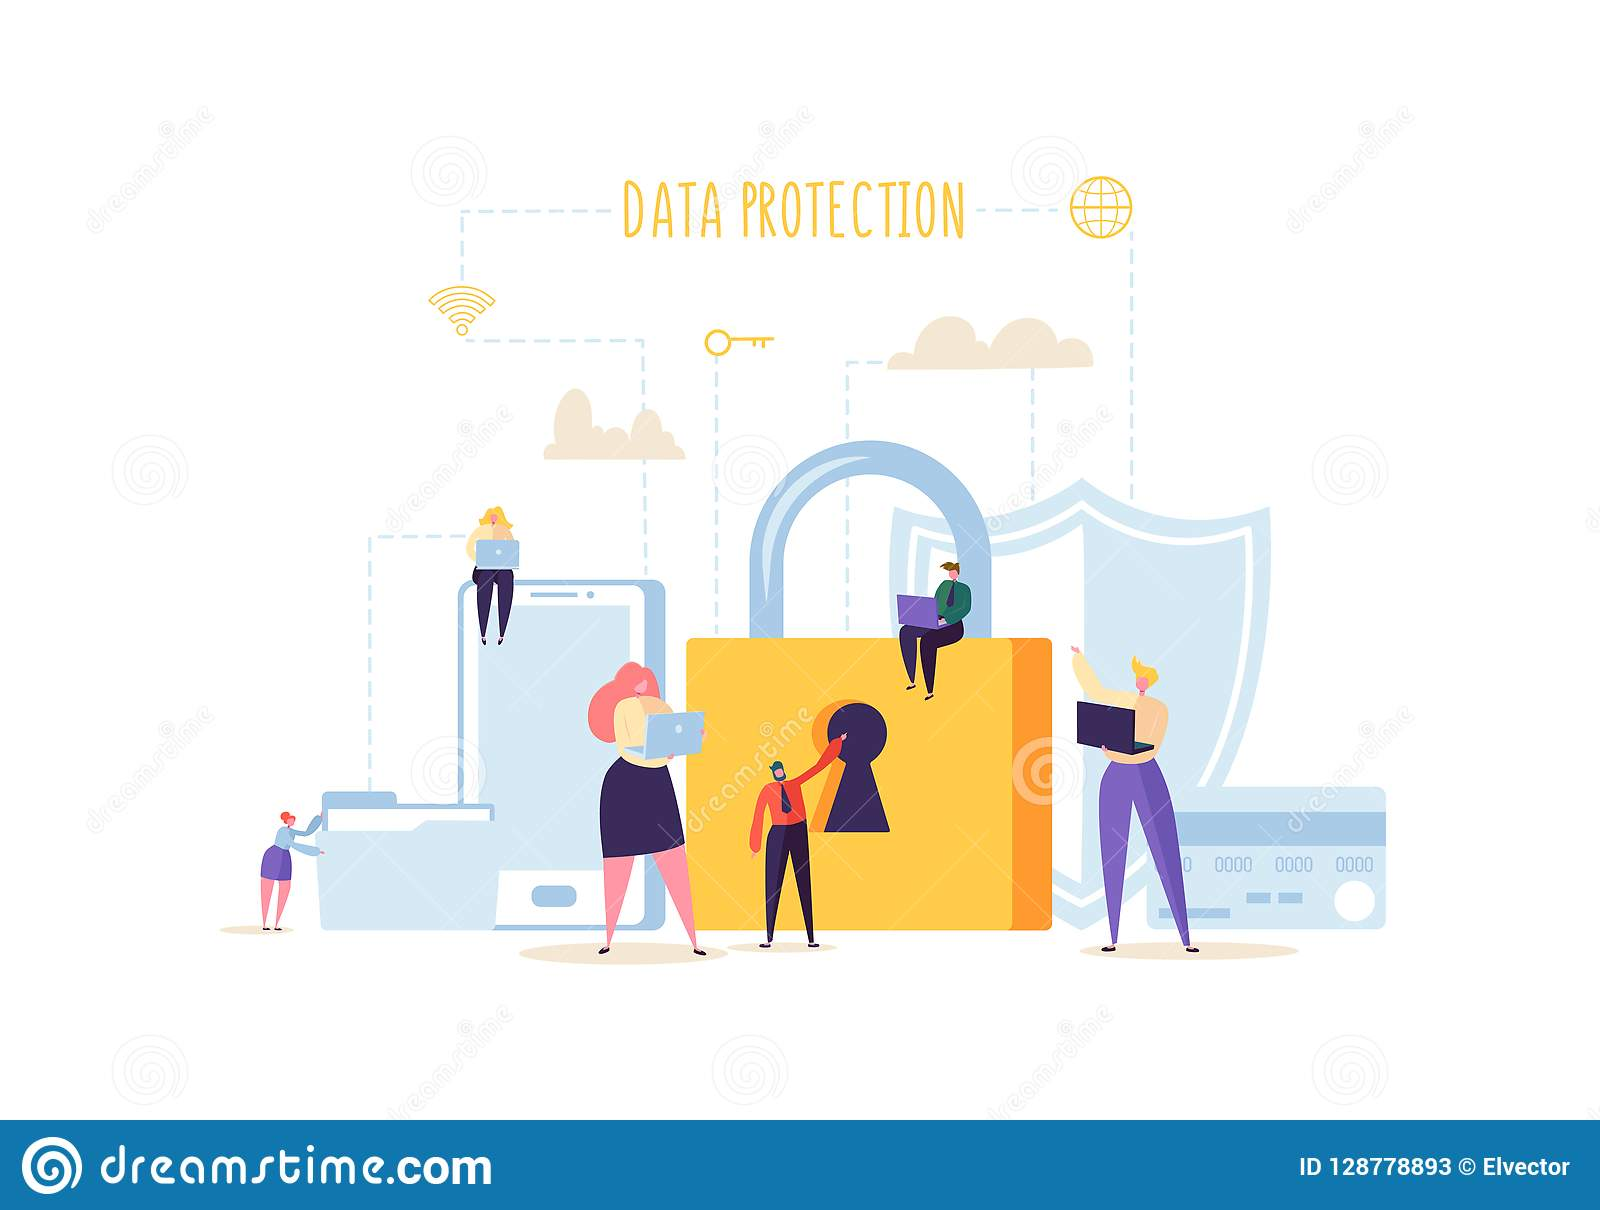 Data Protection Privacy Concept. Confidential and Safe Internet Technologies with Characters Using Computers and Gadgets